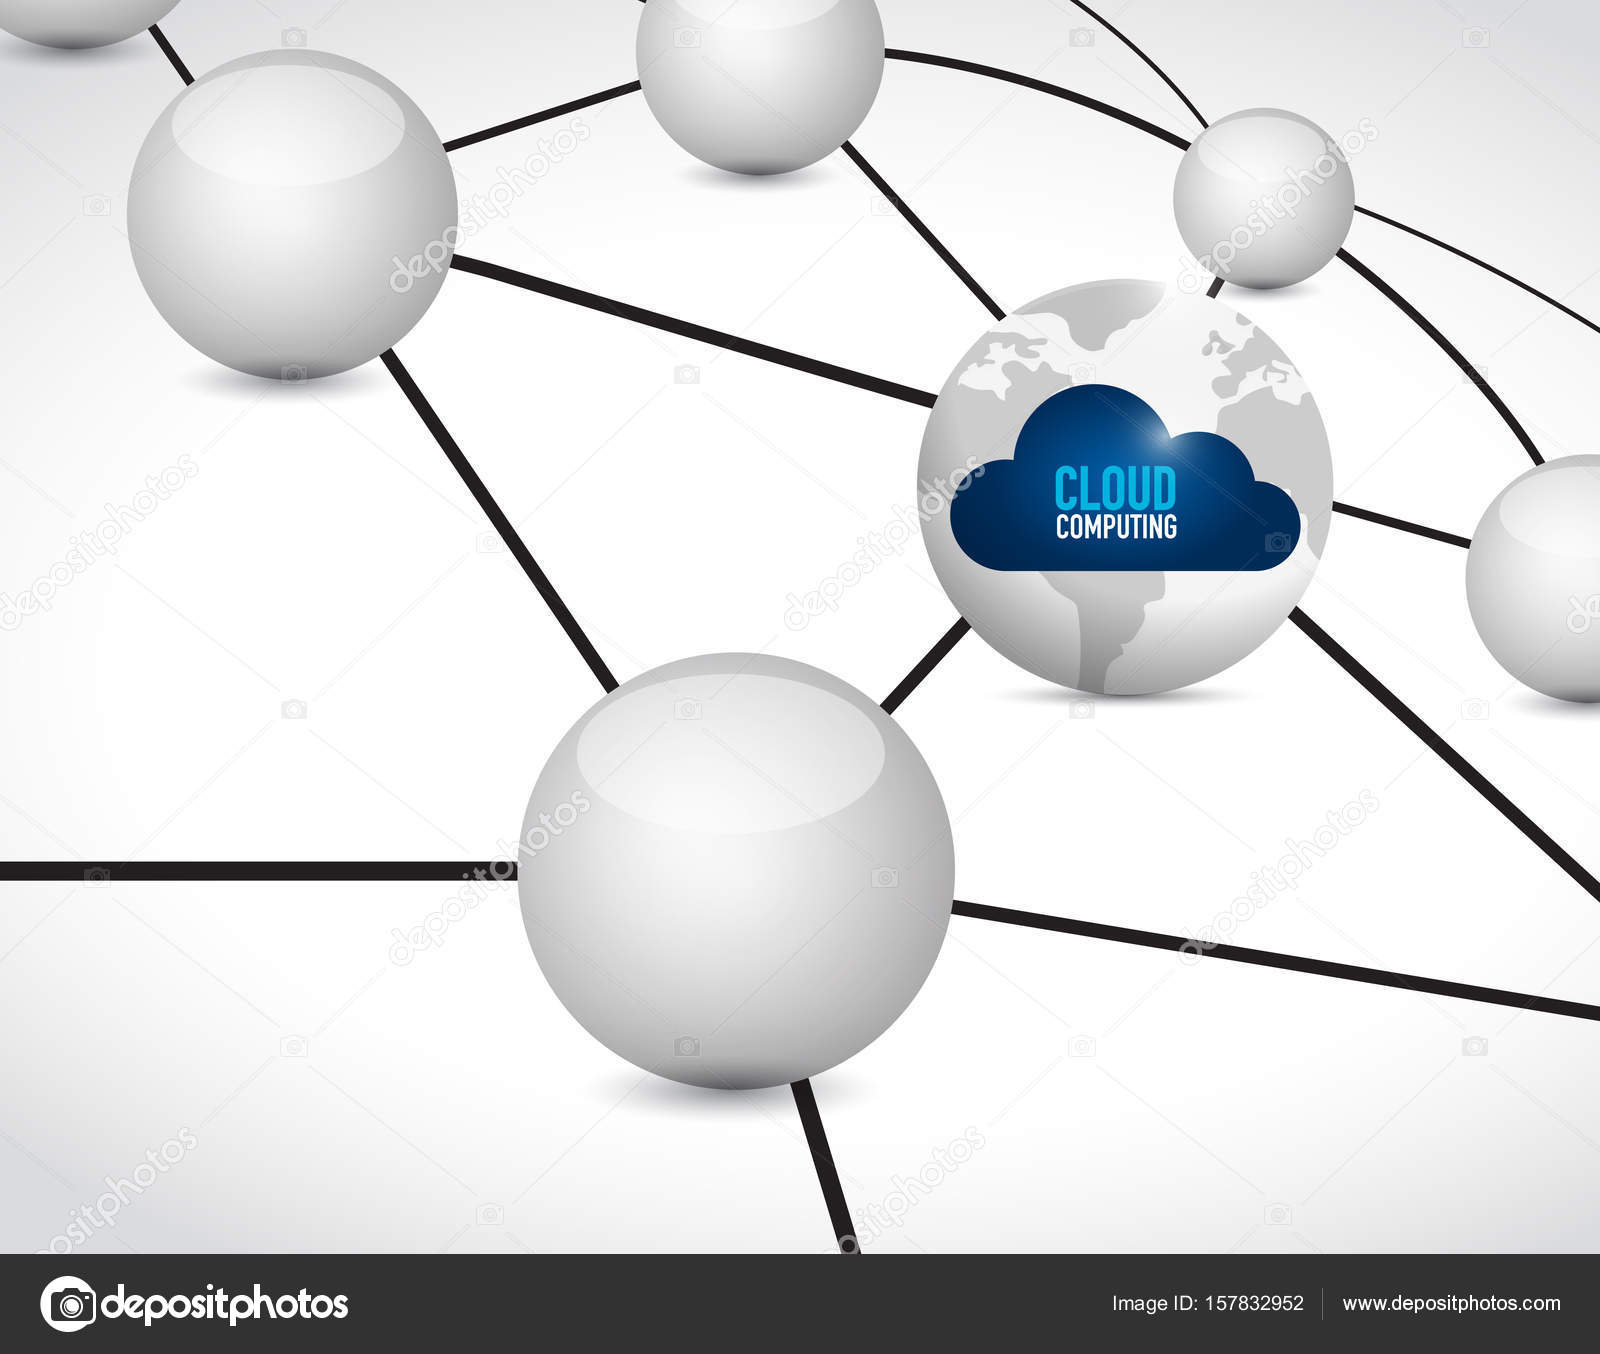 cloud puting link network diagram concept stock photo Wireless Home Network Design Diagram cloud puting link network diagram concept illustration design isolated over white photo by alexmillos